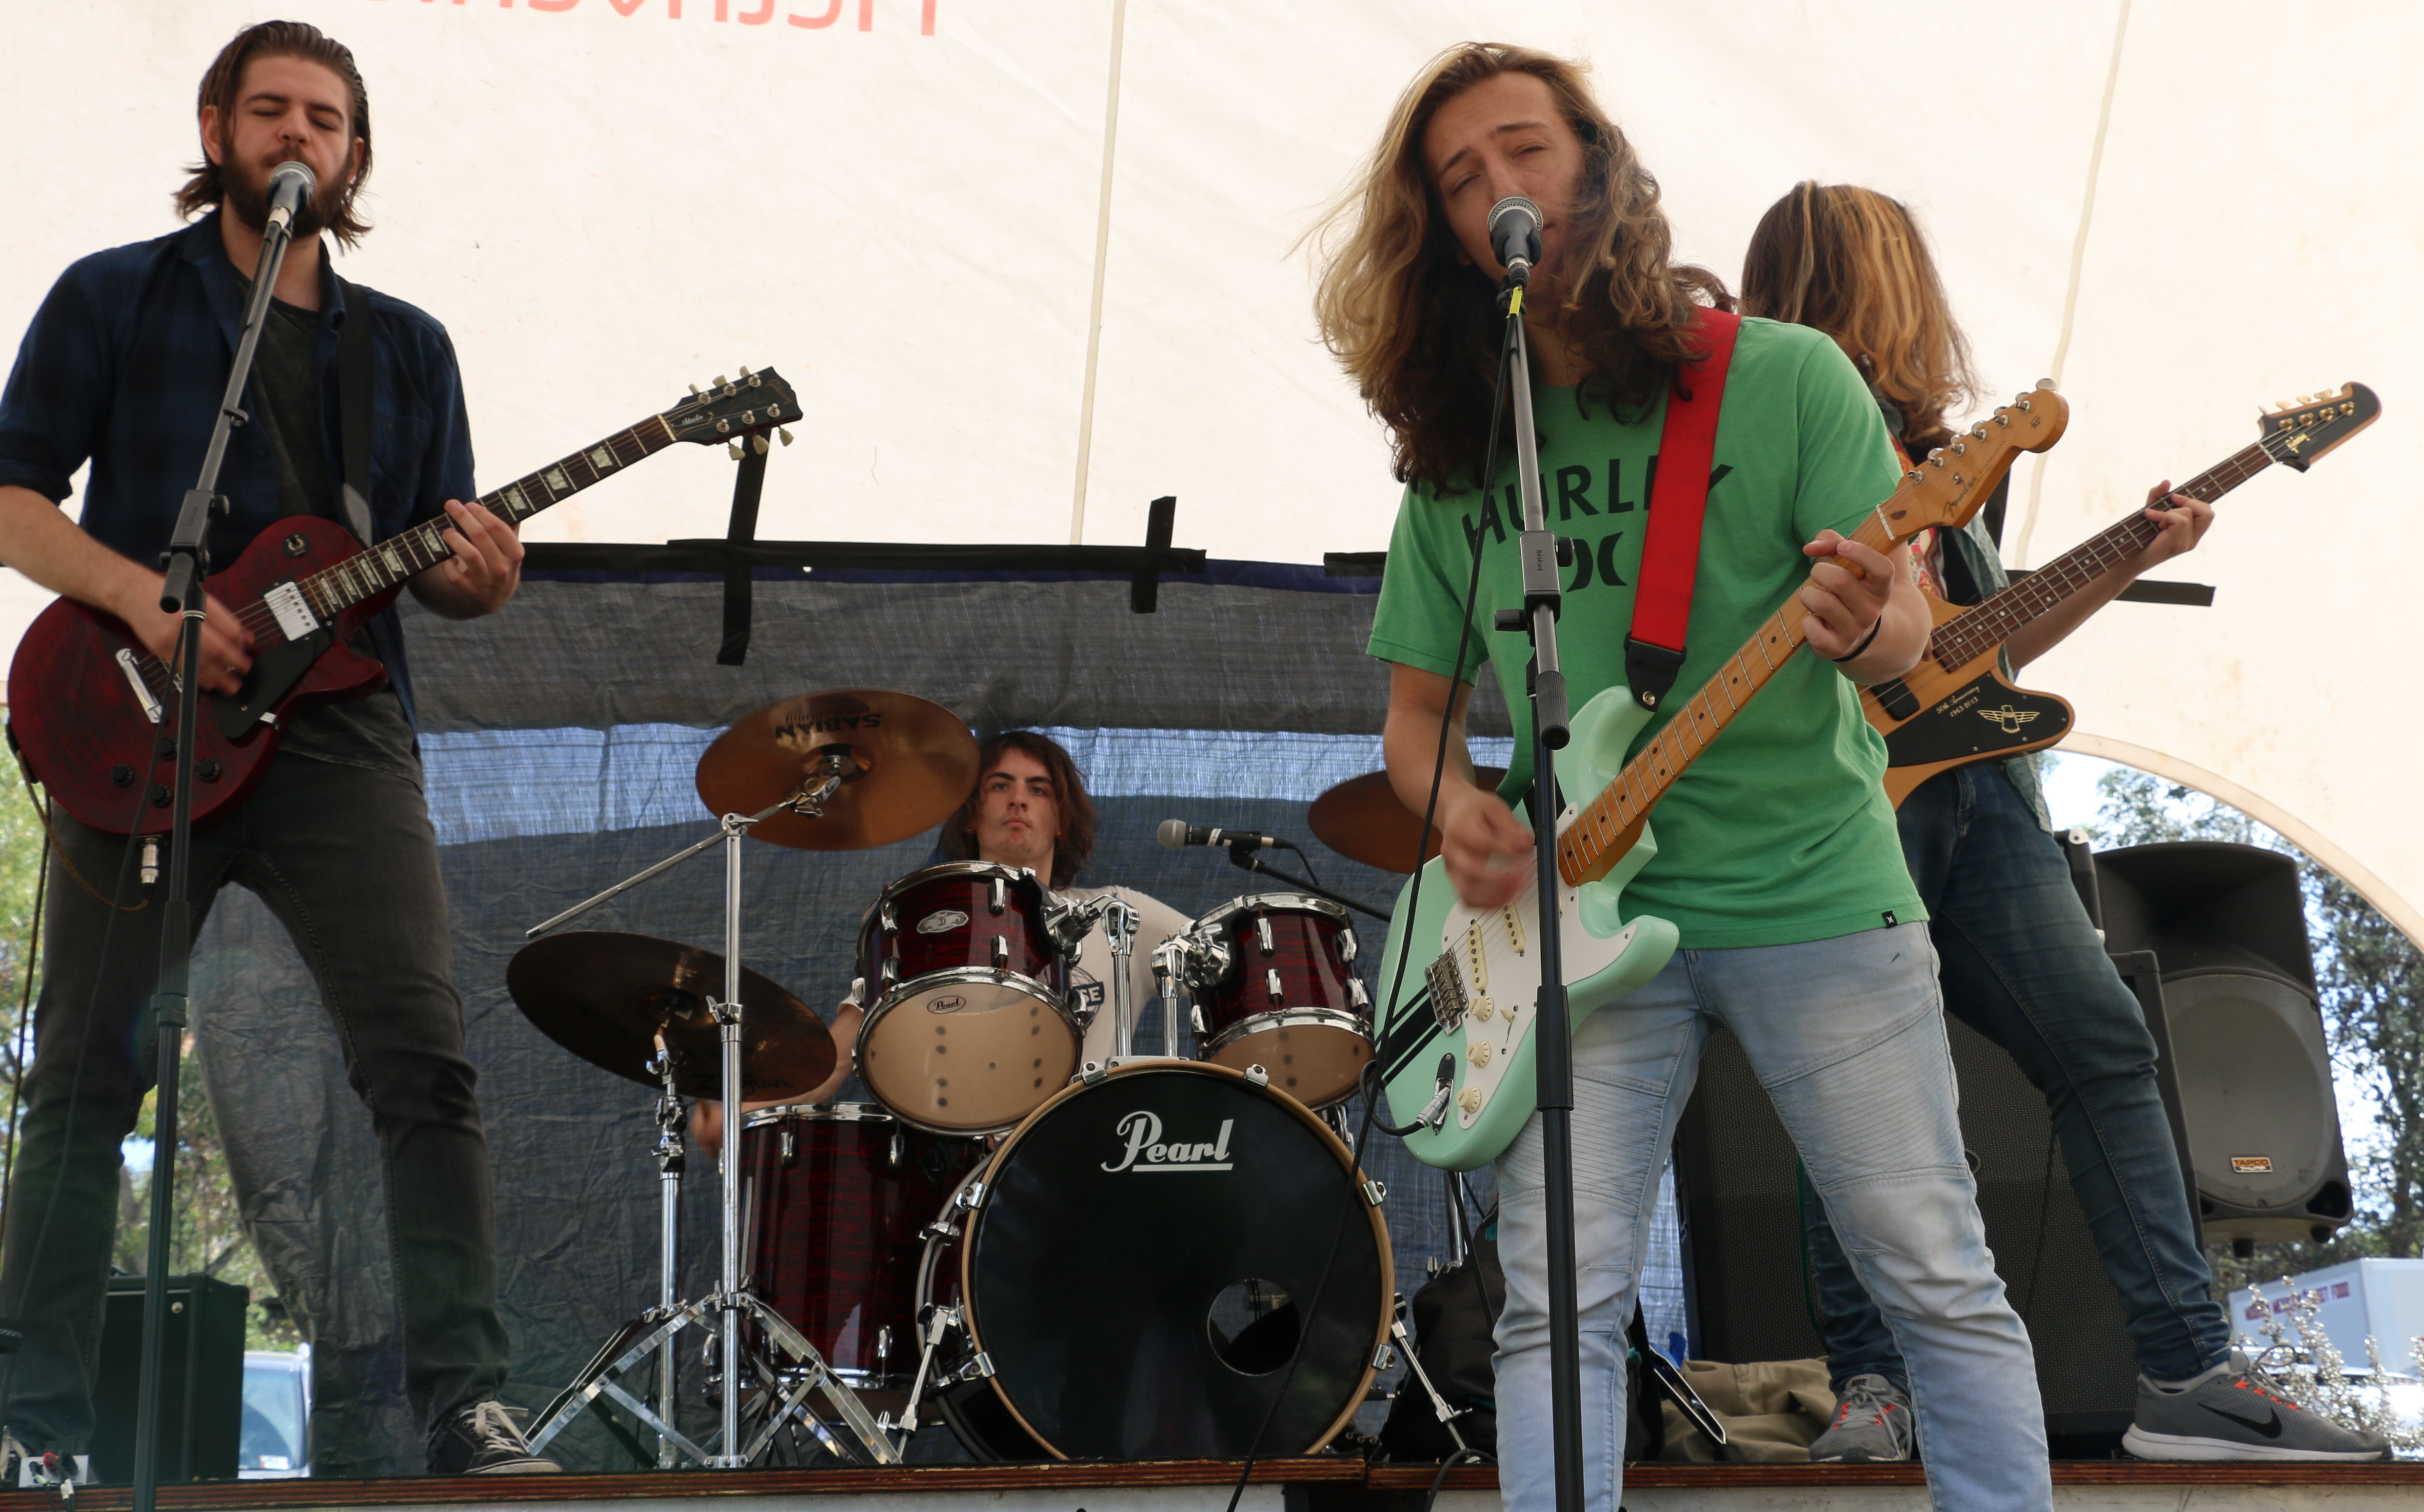 Day Dreamers band performing on the Youth Stage at Celebrate Mooroolbark 2019. Photo by Linda Williams.